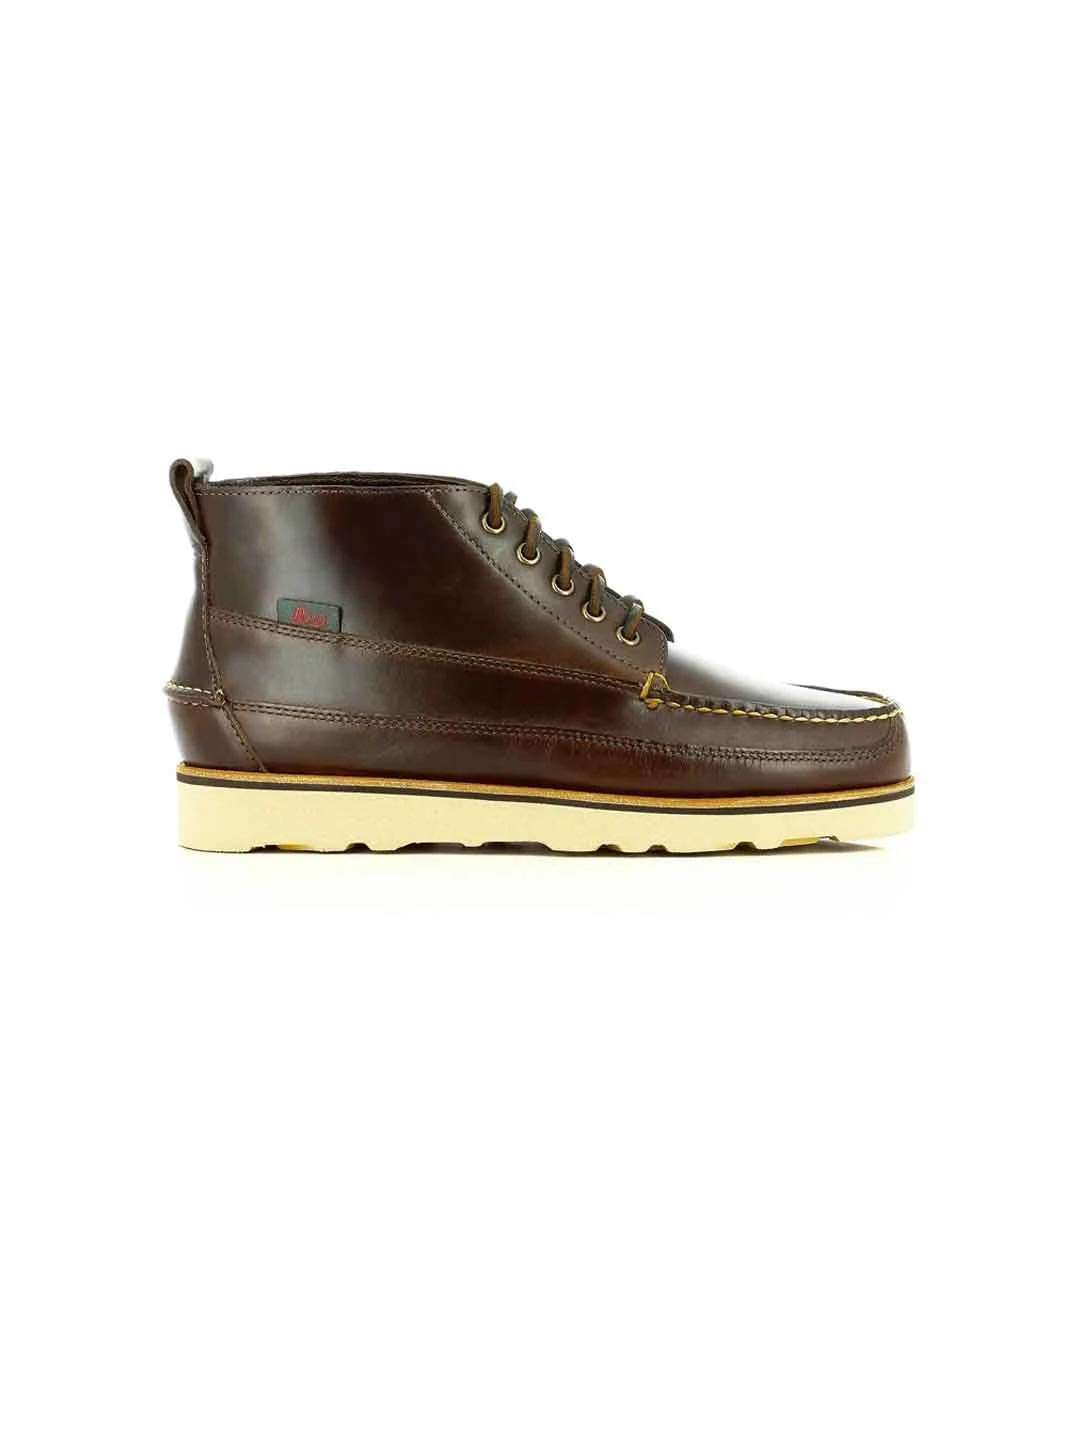 G H BASS & CO Leather Camp Moc III Pull Up Ranger - Revolver Menswear Bawtry